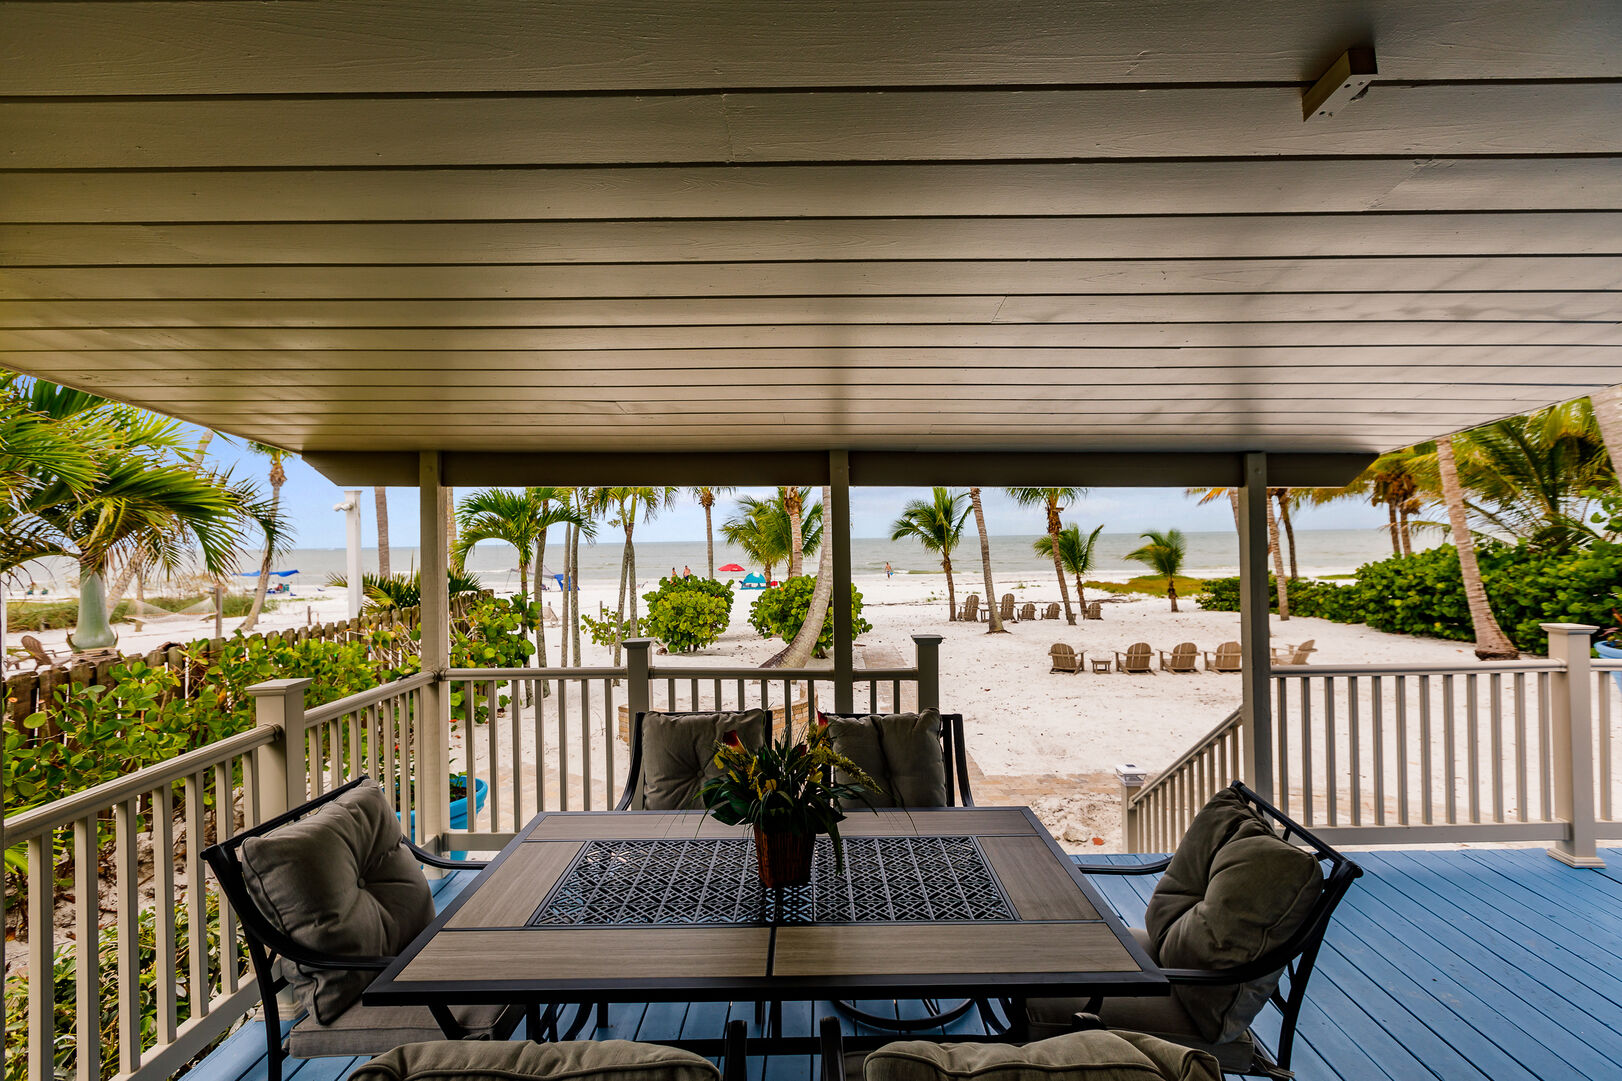 Beautiful Back Deck with Plenty of Seating and Beachfront View